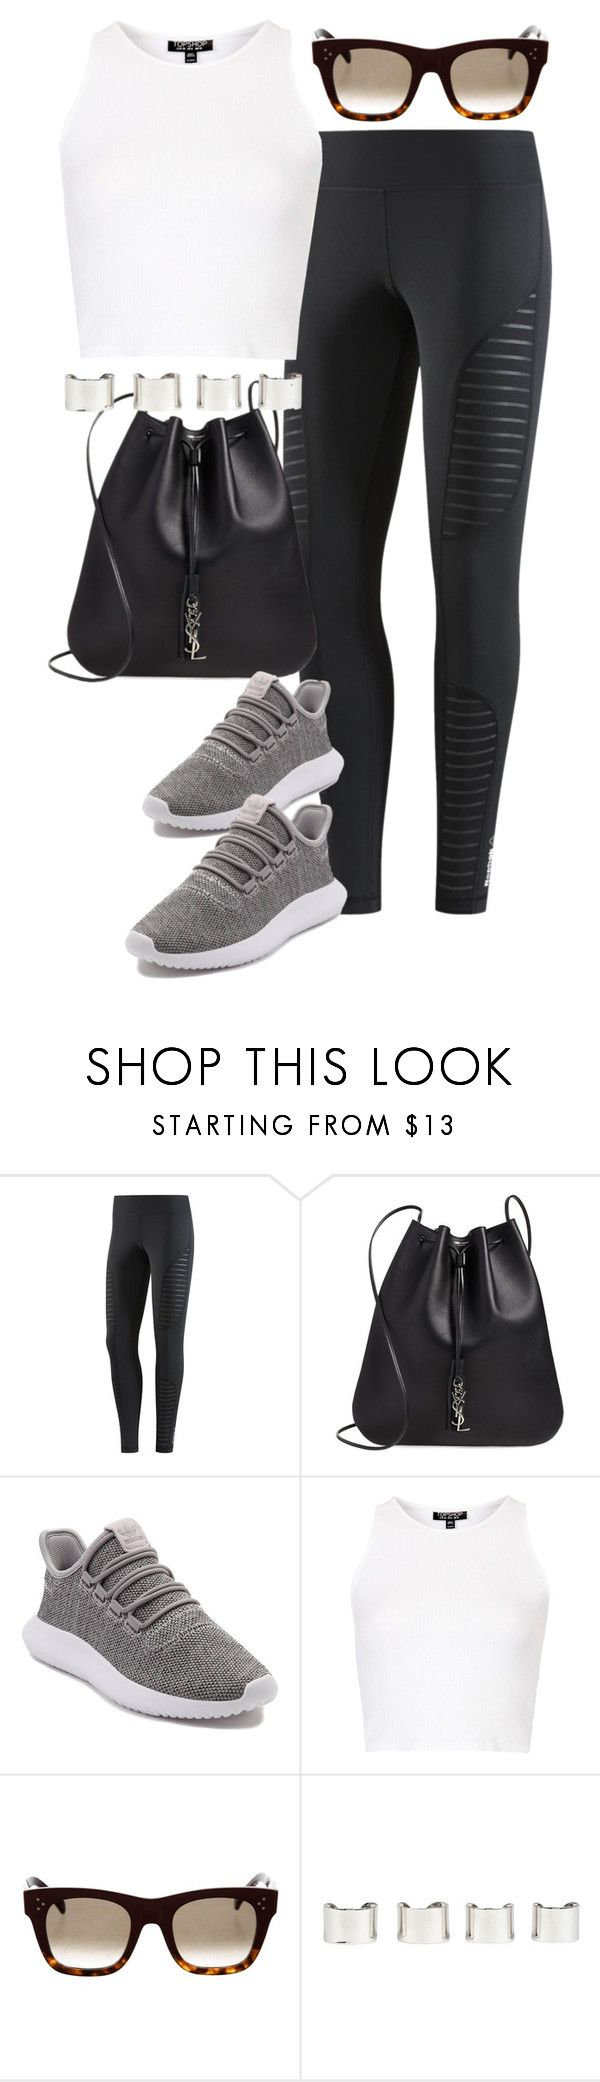 """""""Untitled #4283"""" by lily-tubman ❤ liked on Polyvore featuring Reebok, Yves Saint Laurent, adidas, Topshop, CÉLINE and Maison Margiela"""